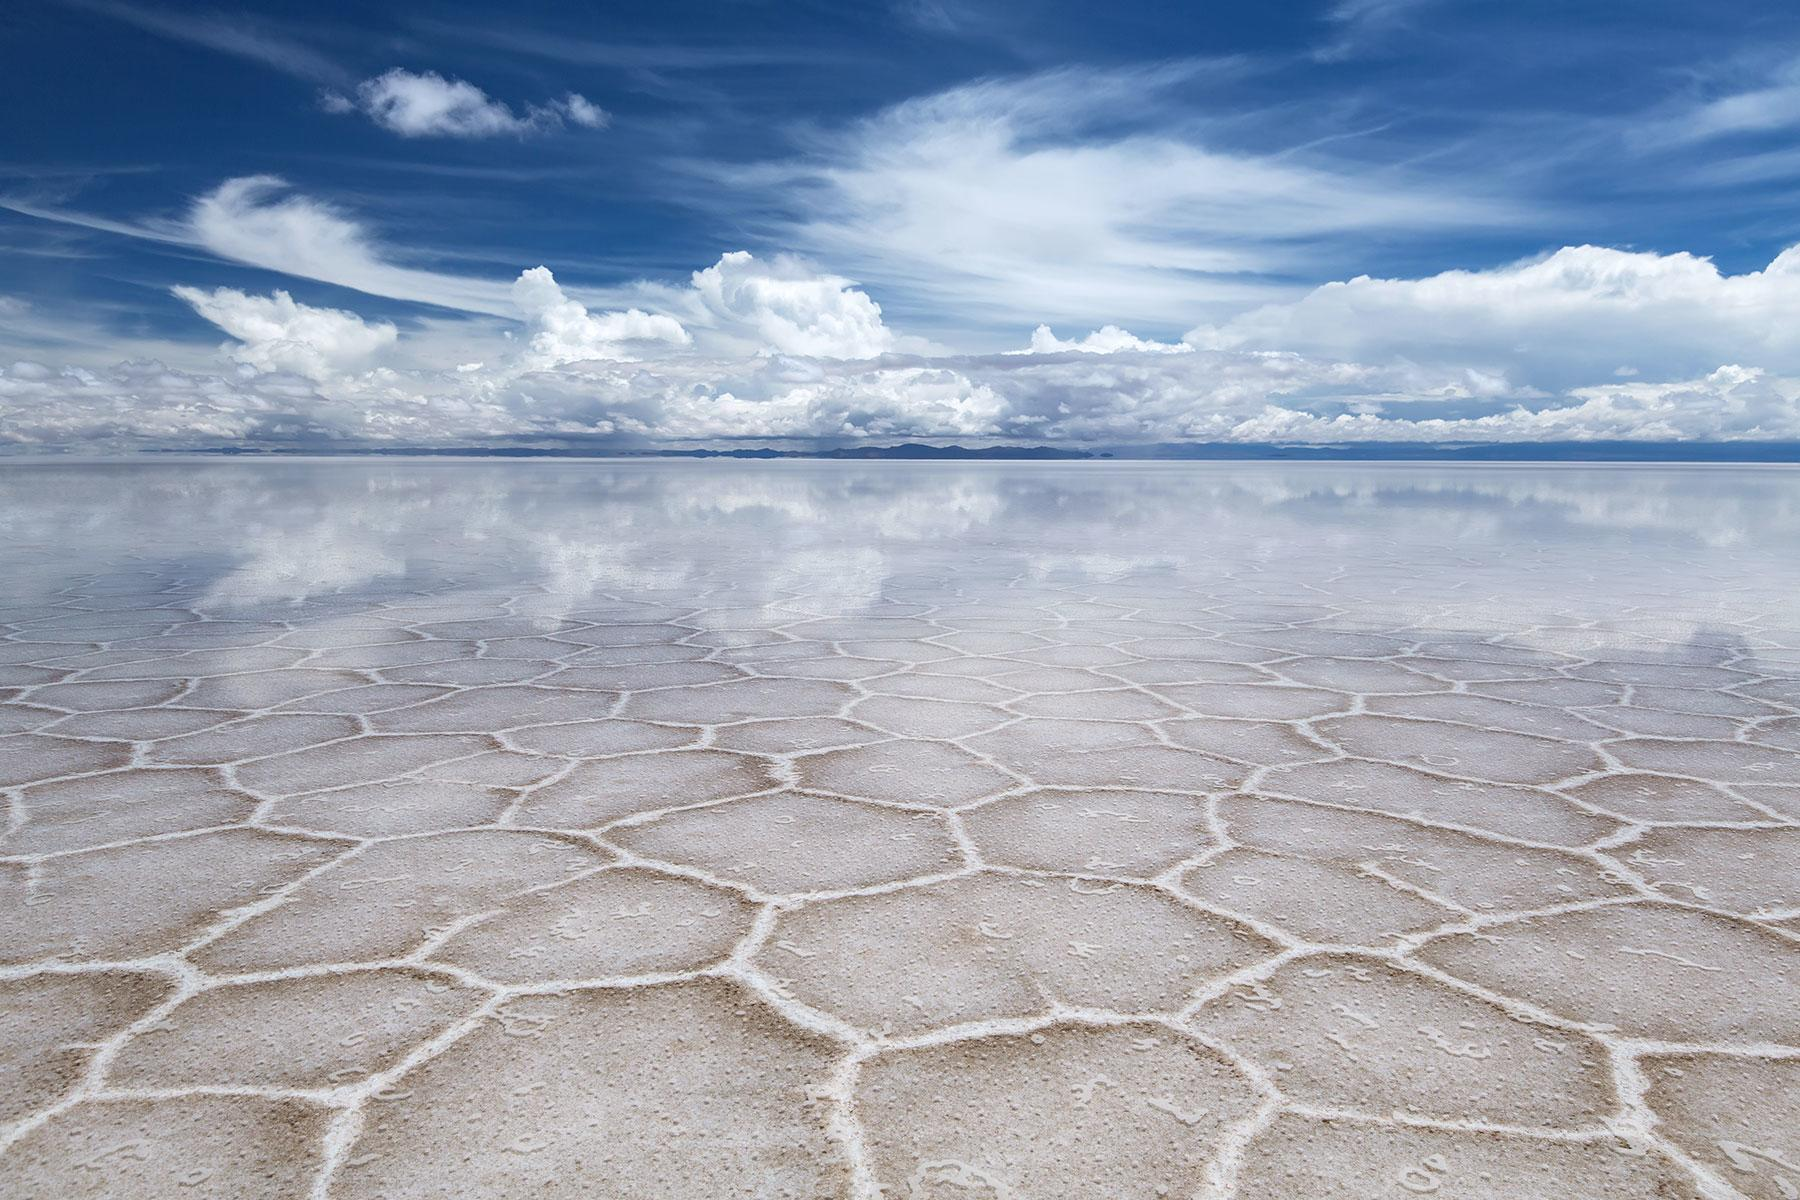 How To Visit The Largest Salt Flat In The World In Bolivia S Salar De Uyuni